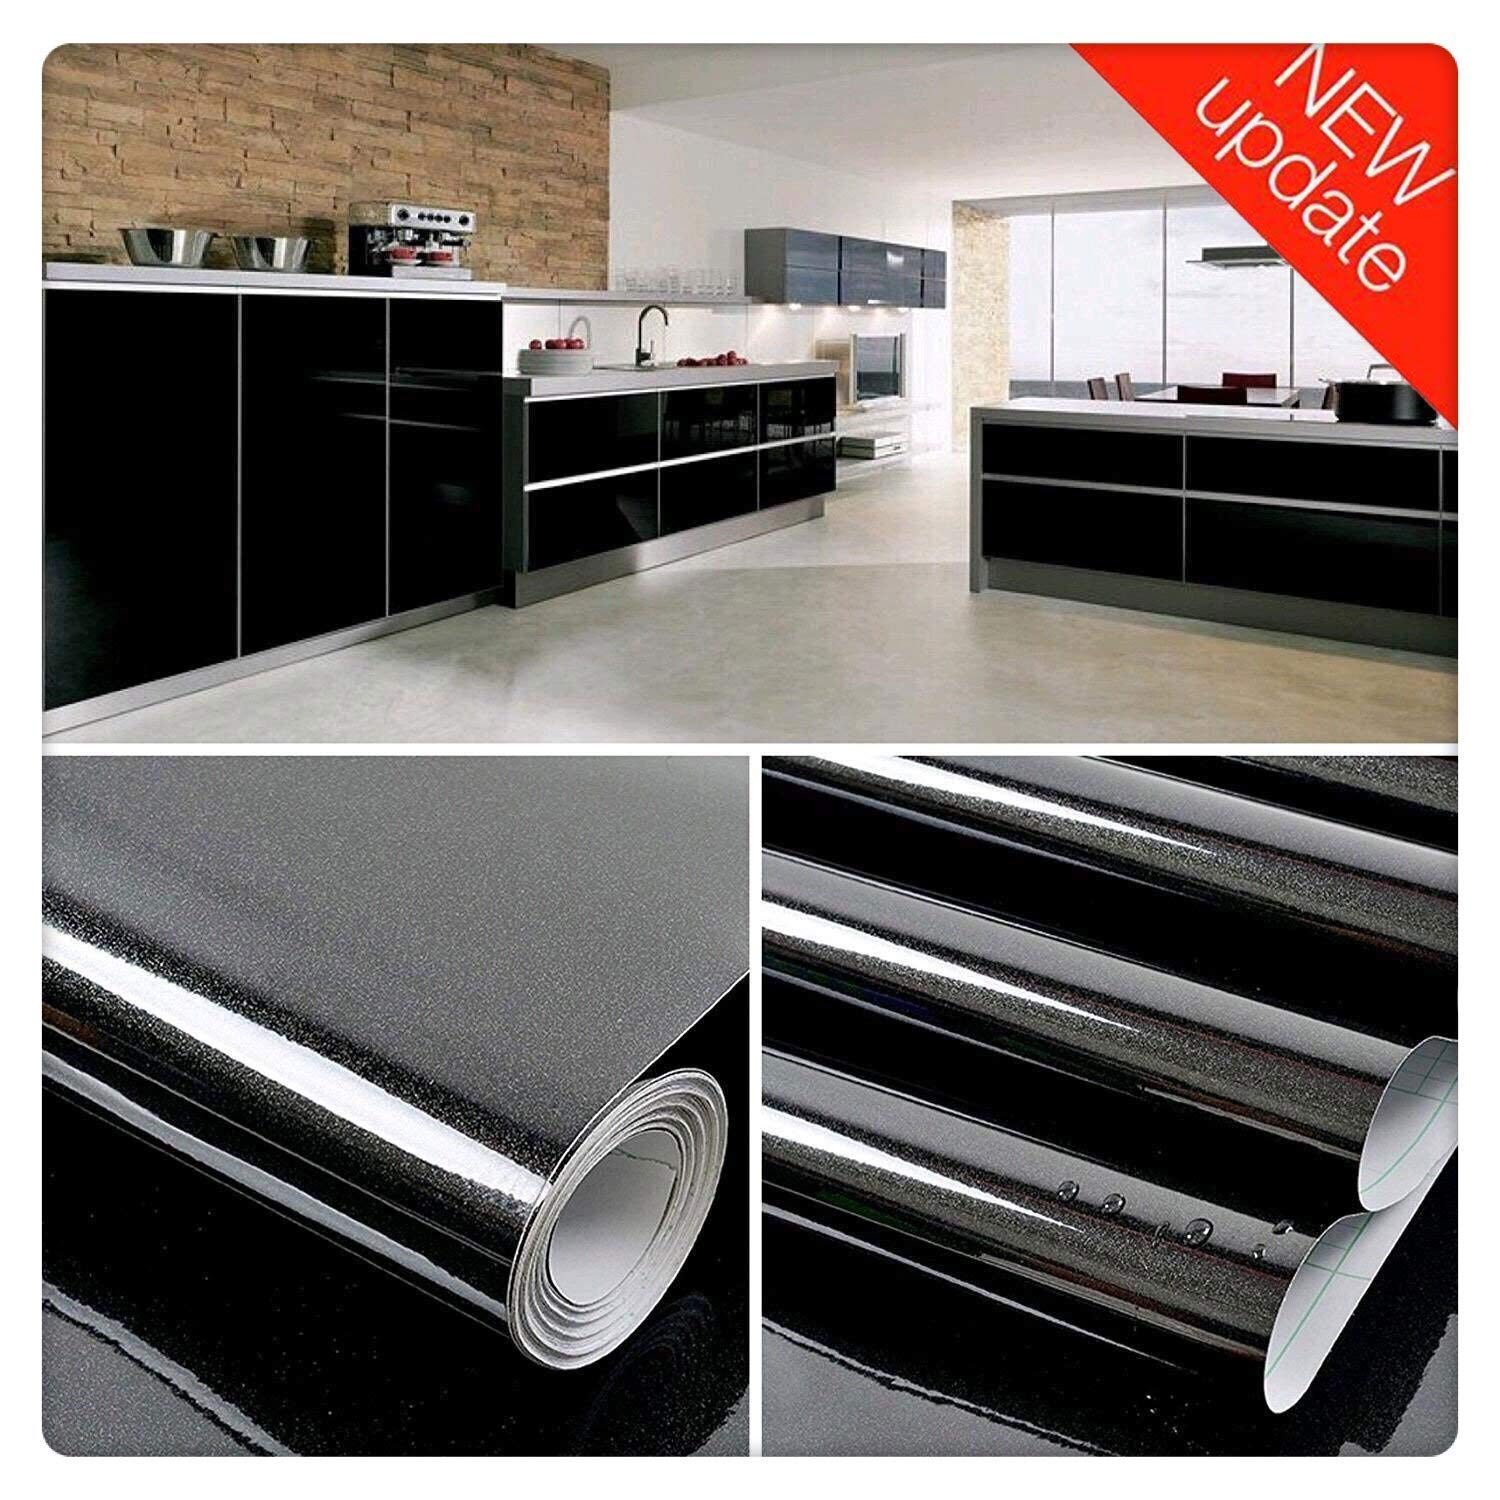 """Black Contact Paper Vinyl Self Adhesive Film Decorative Furniture Contact Paper Waterproof Stain-Resistant for Kitchen Counter Top Cabinets (11.8"""" X 78.8"""")"""